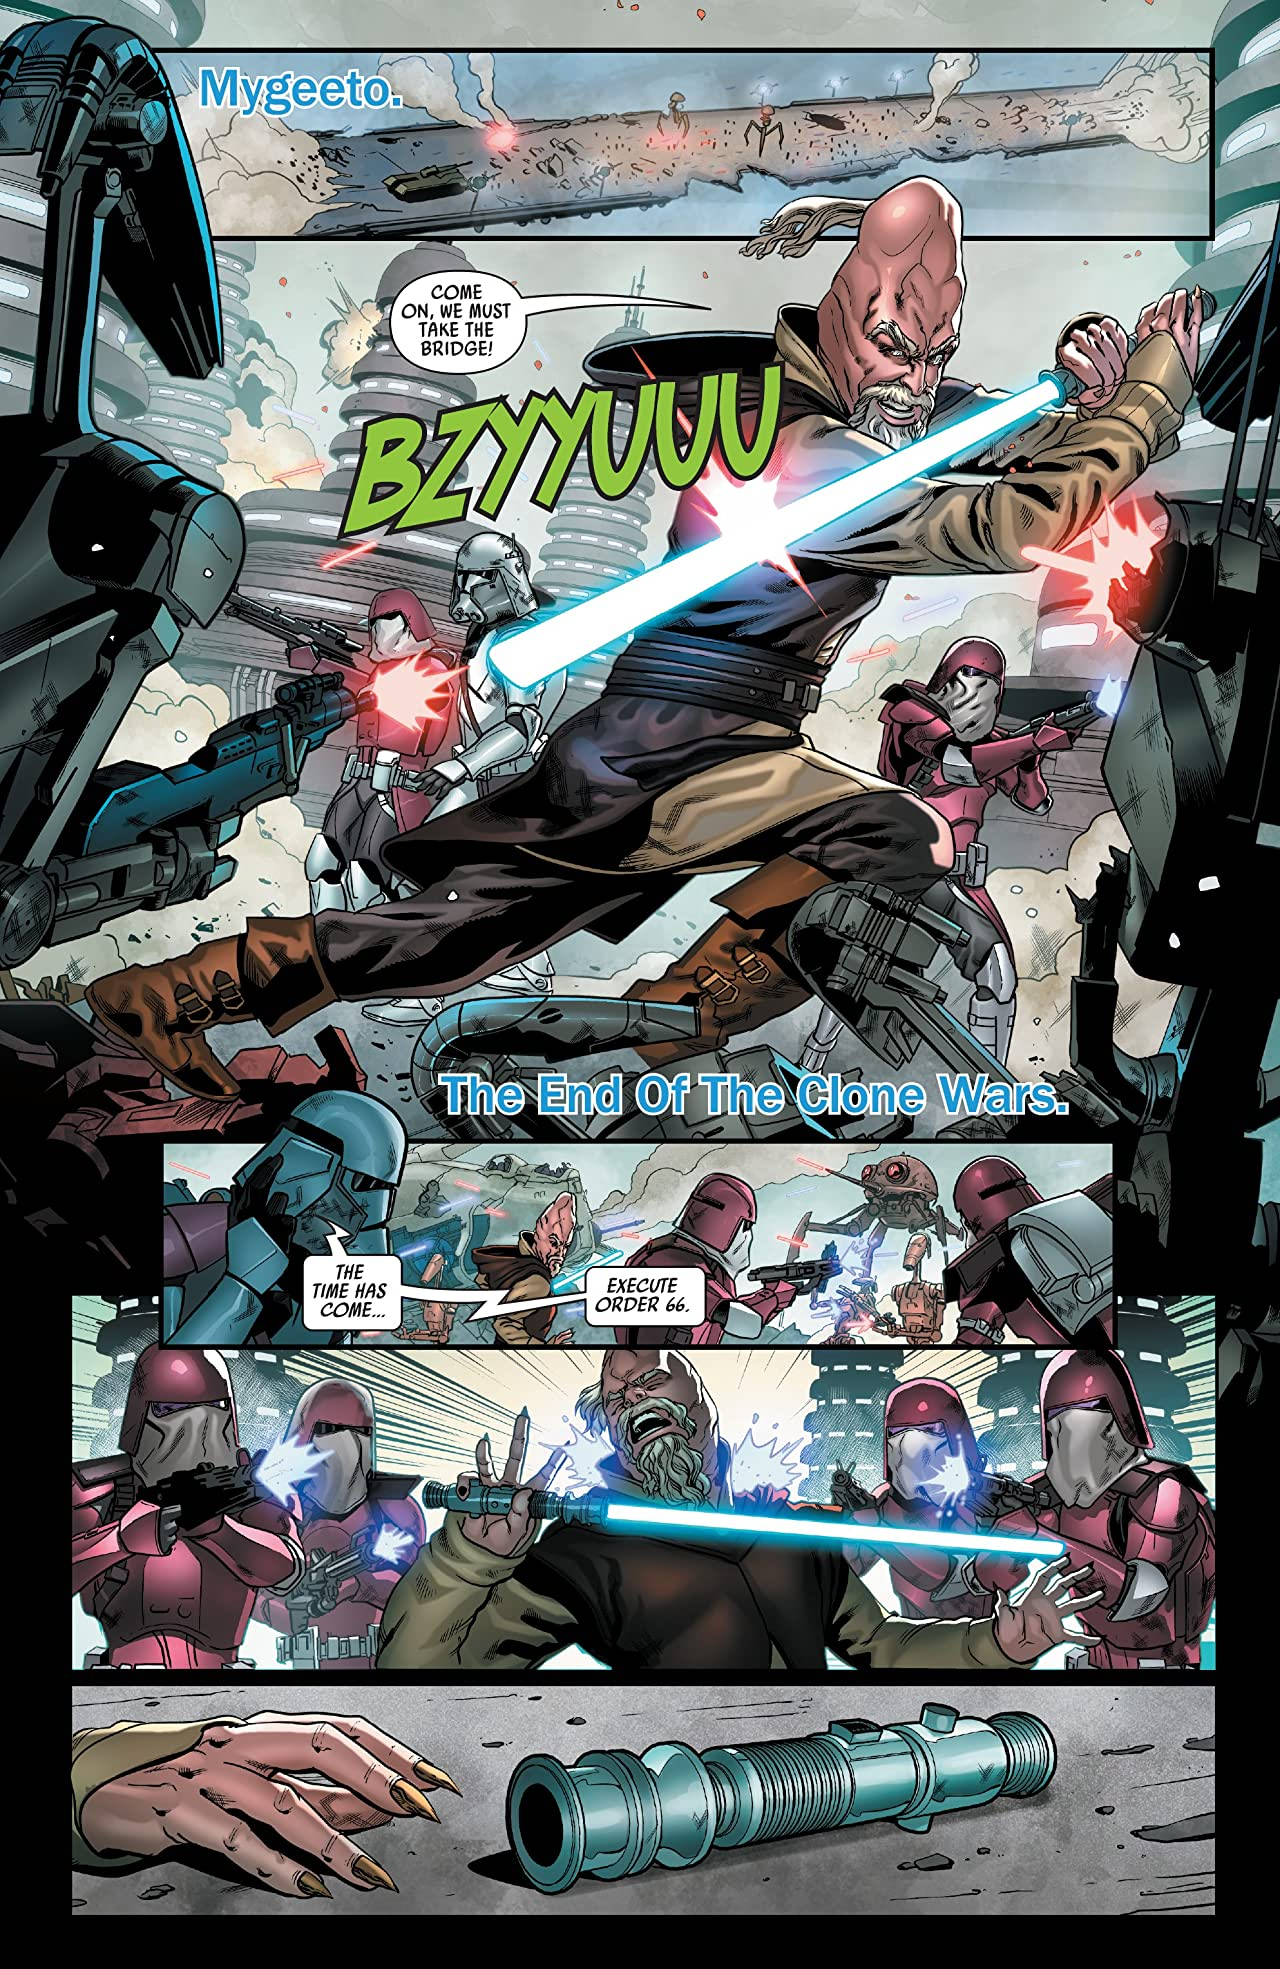 Star Wars: Galaxy's Edge (2019) #2 (of 5)